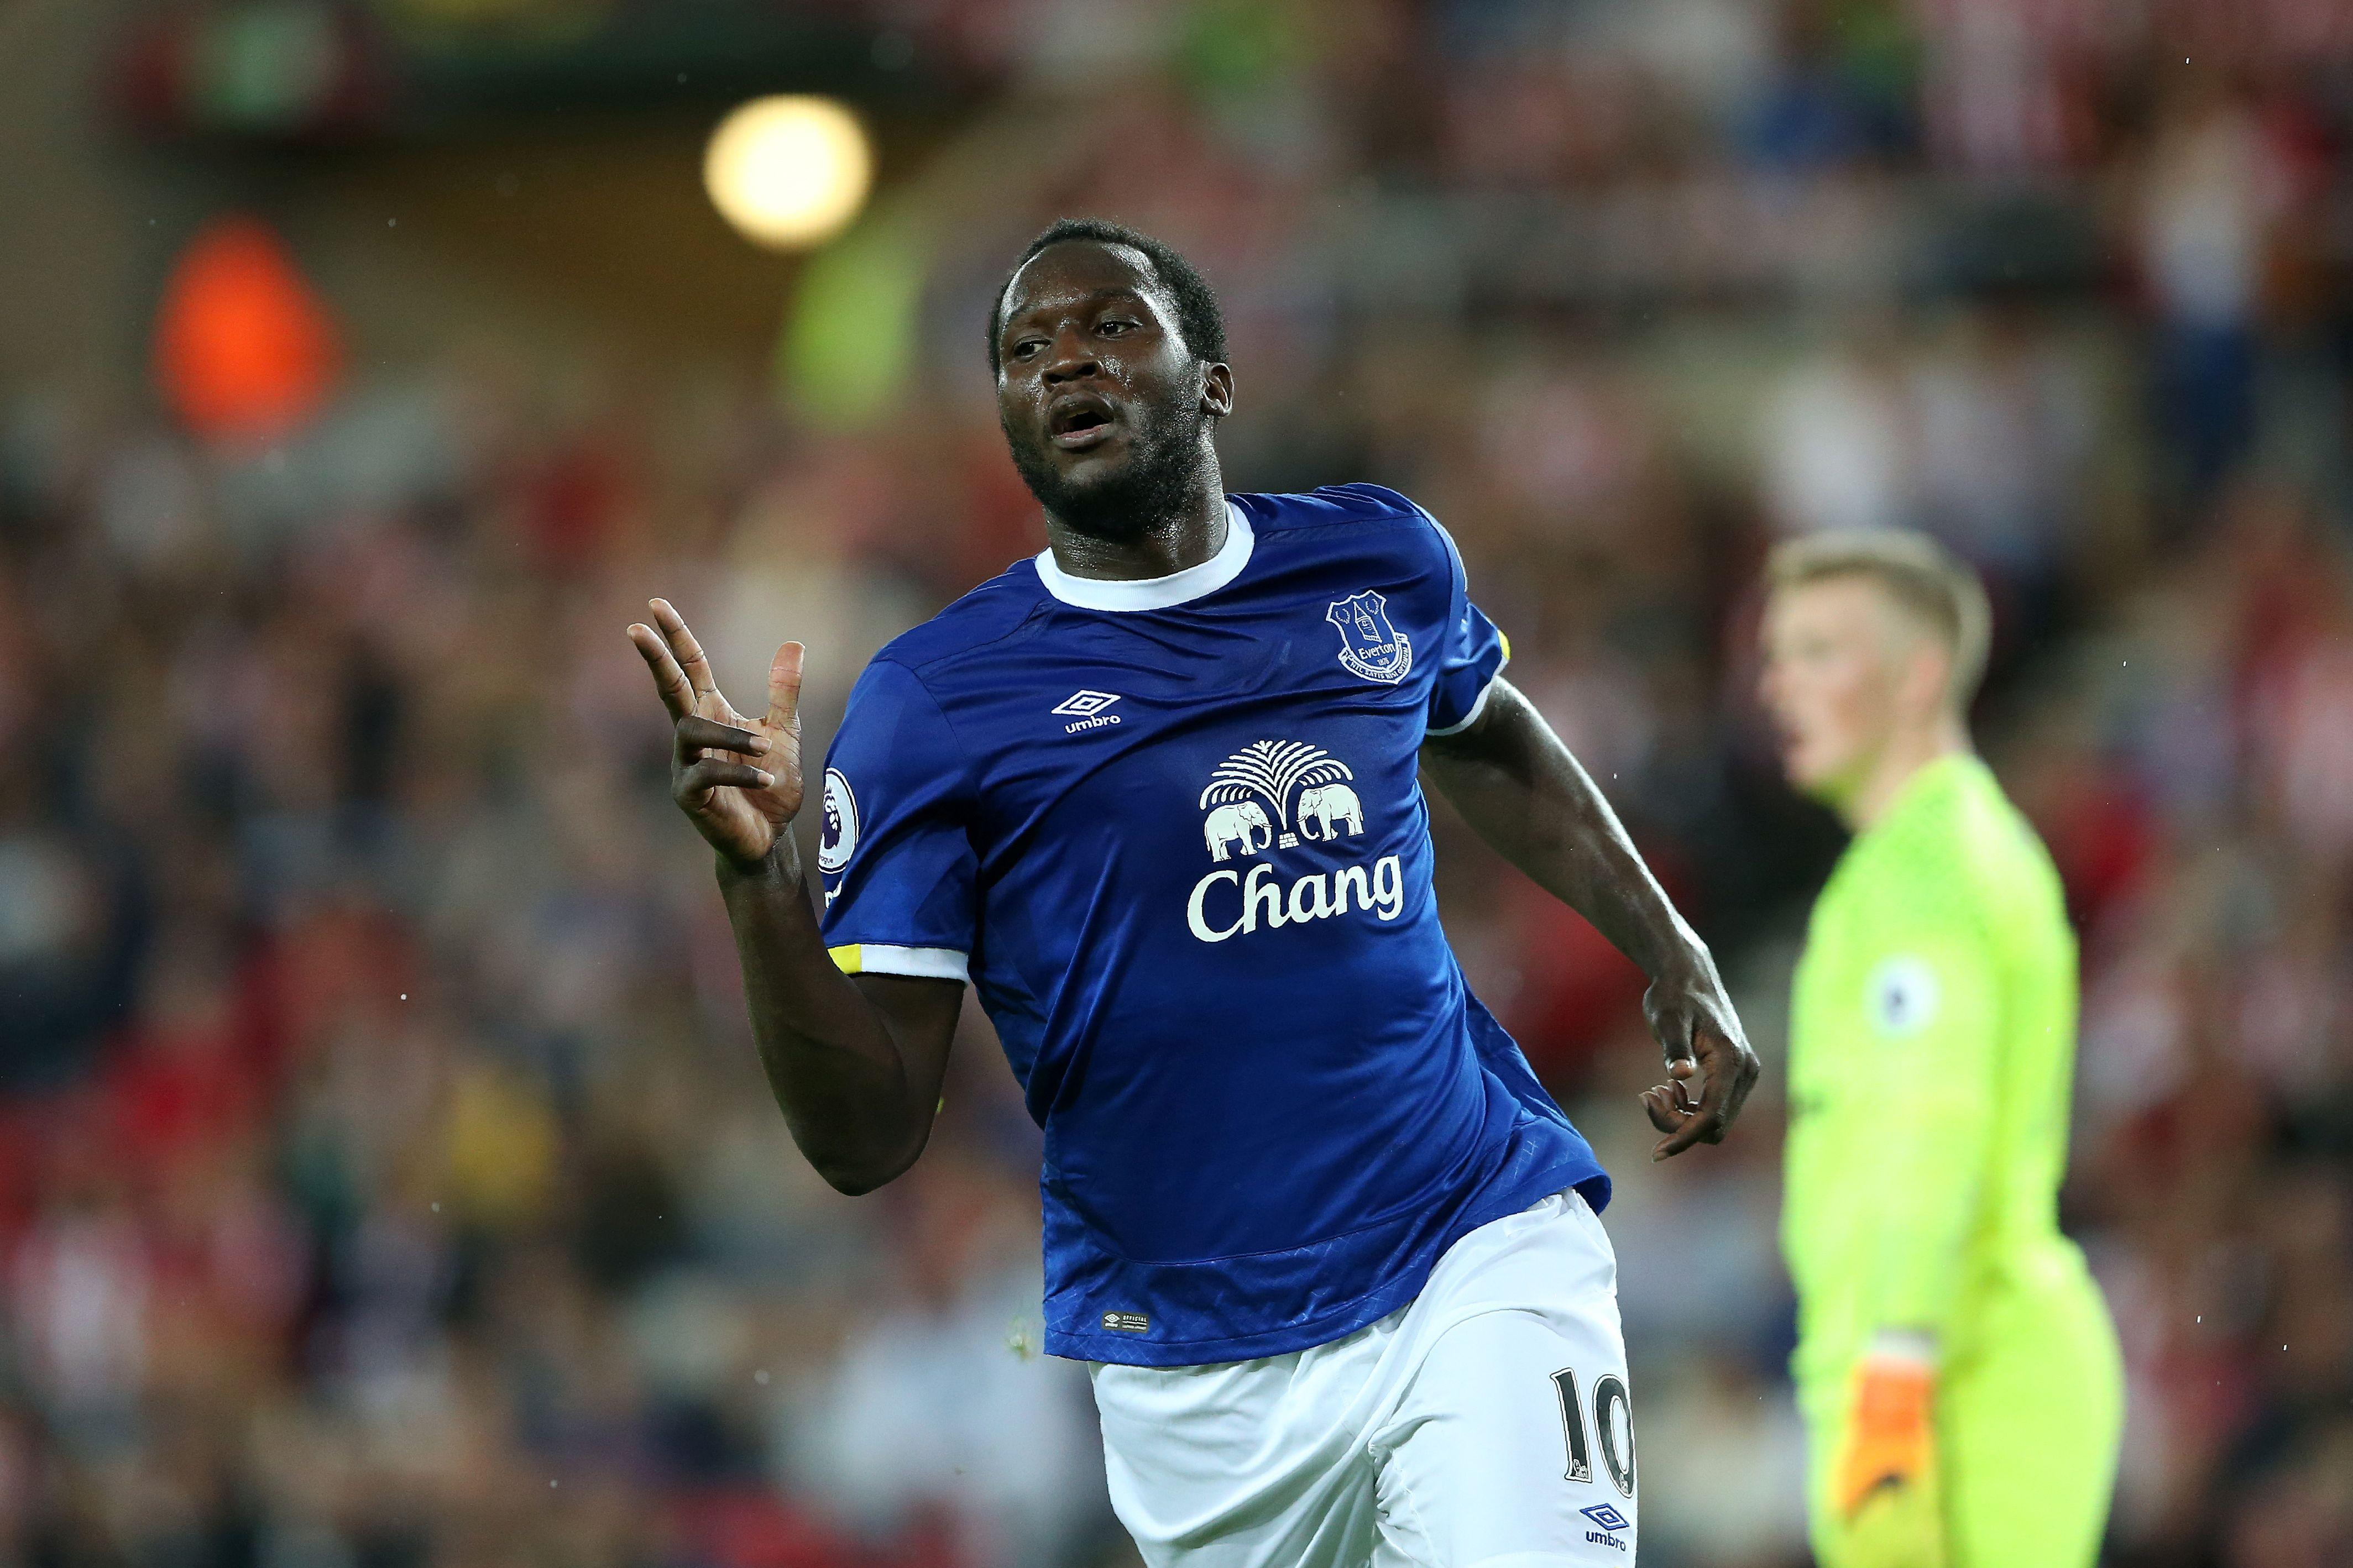 Everton's Belgian striker Romelu Lukaku celebrates scoring his team's third goal during the English Premier League football match between Sunderland and Everton at the Stadium of Light in Sunderland, north-east England on September 12, 2016. / AFP / SCOTT HEPPELL / RESTRICTED TO EDITORIAL USE. No use with unauthorized audio, video, data, fixture lists, club/league logos or 'live' services. Online in-match use limited to 75 images, no video emulation. No use in betting, games or single club/league/player publications. / (Photo credit should read SCOTT HEPPELL/AFP/Getty Images)